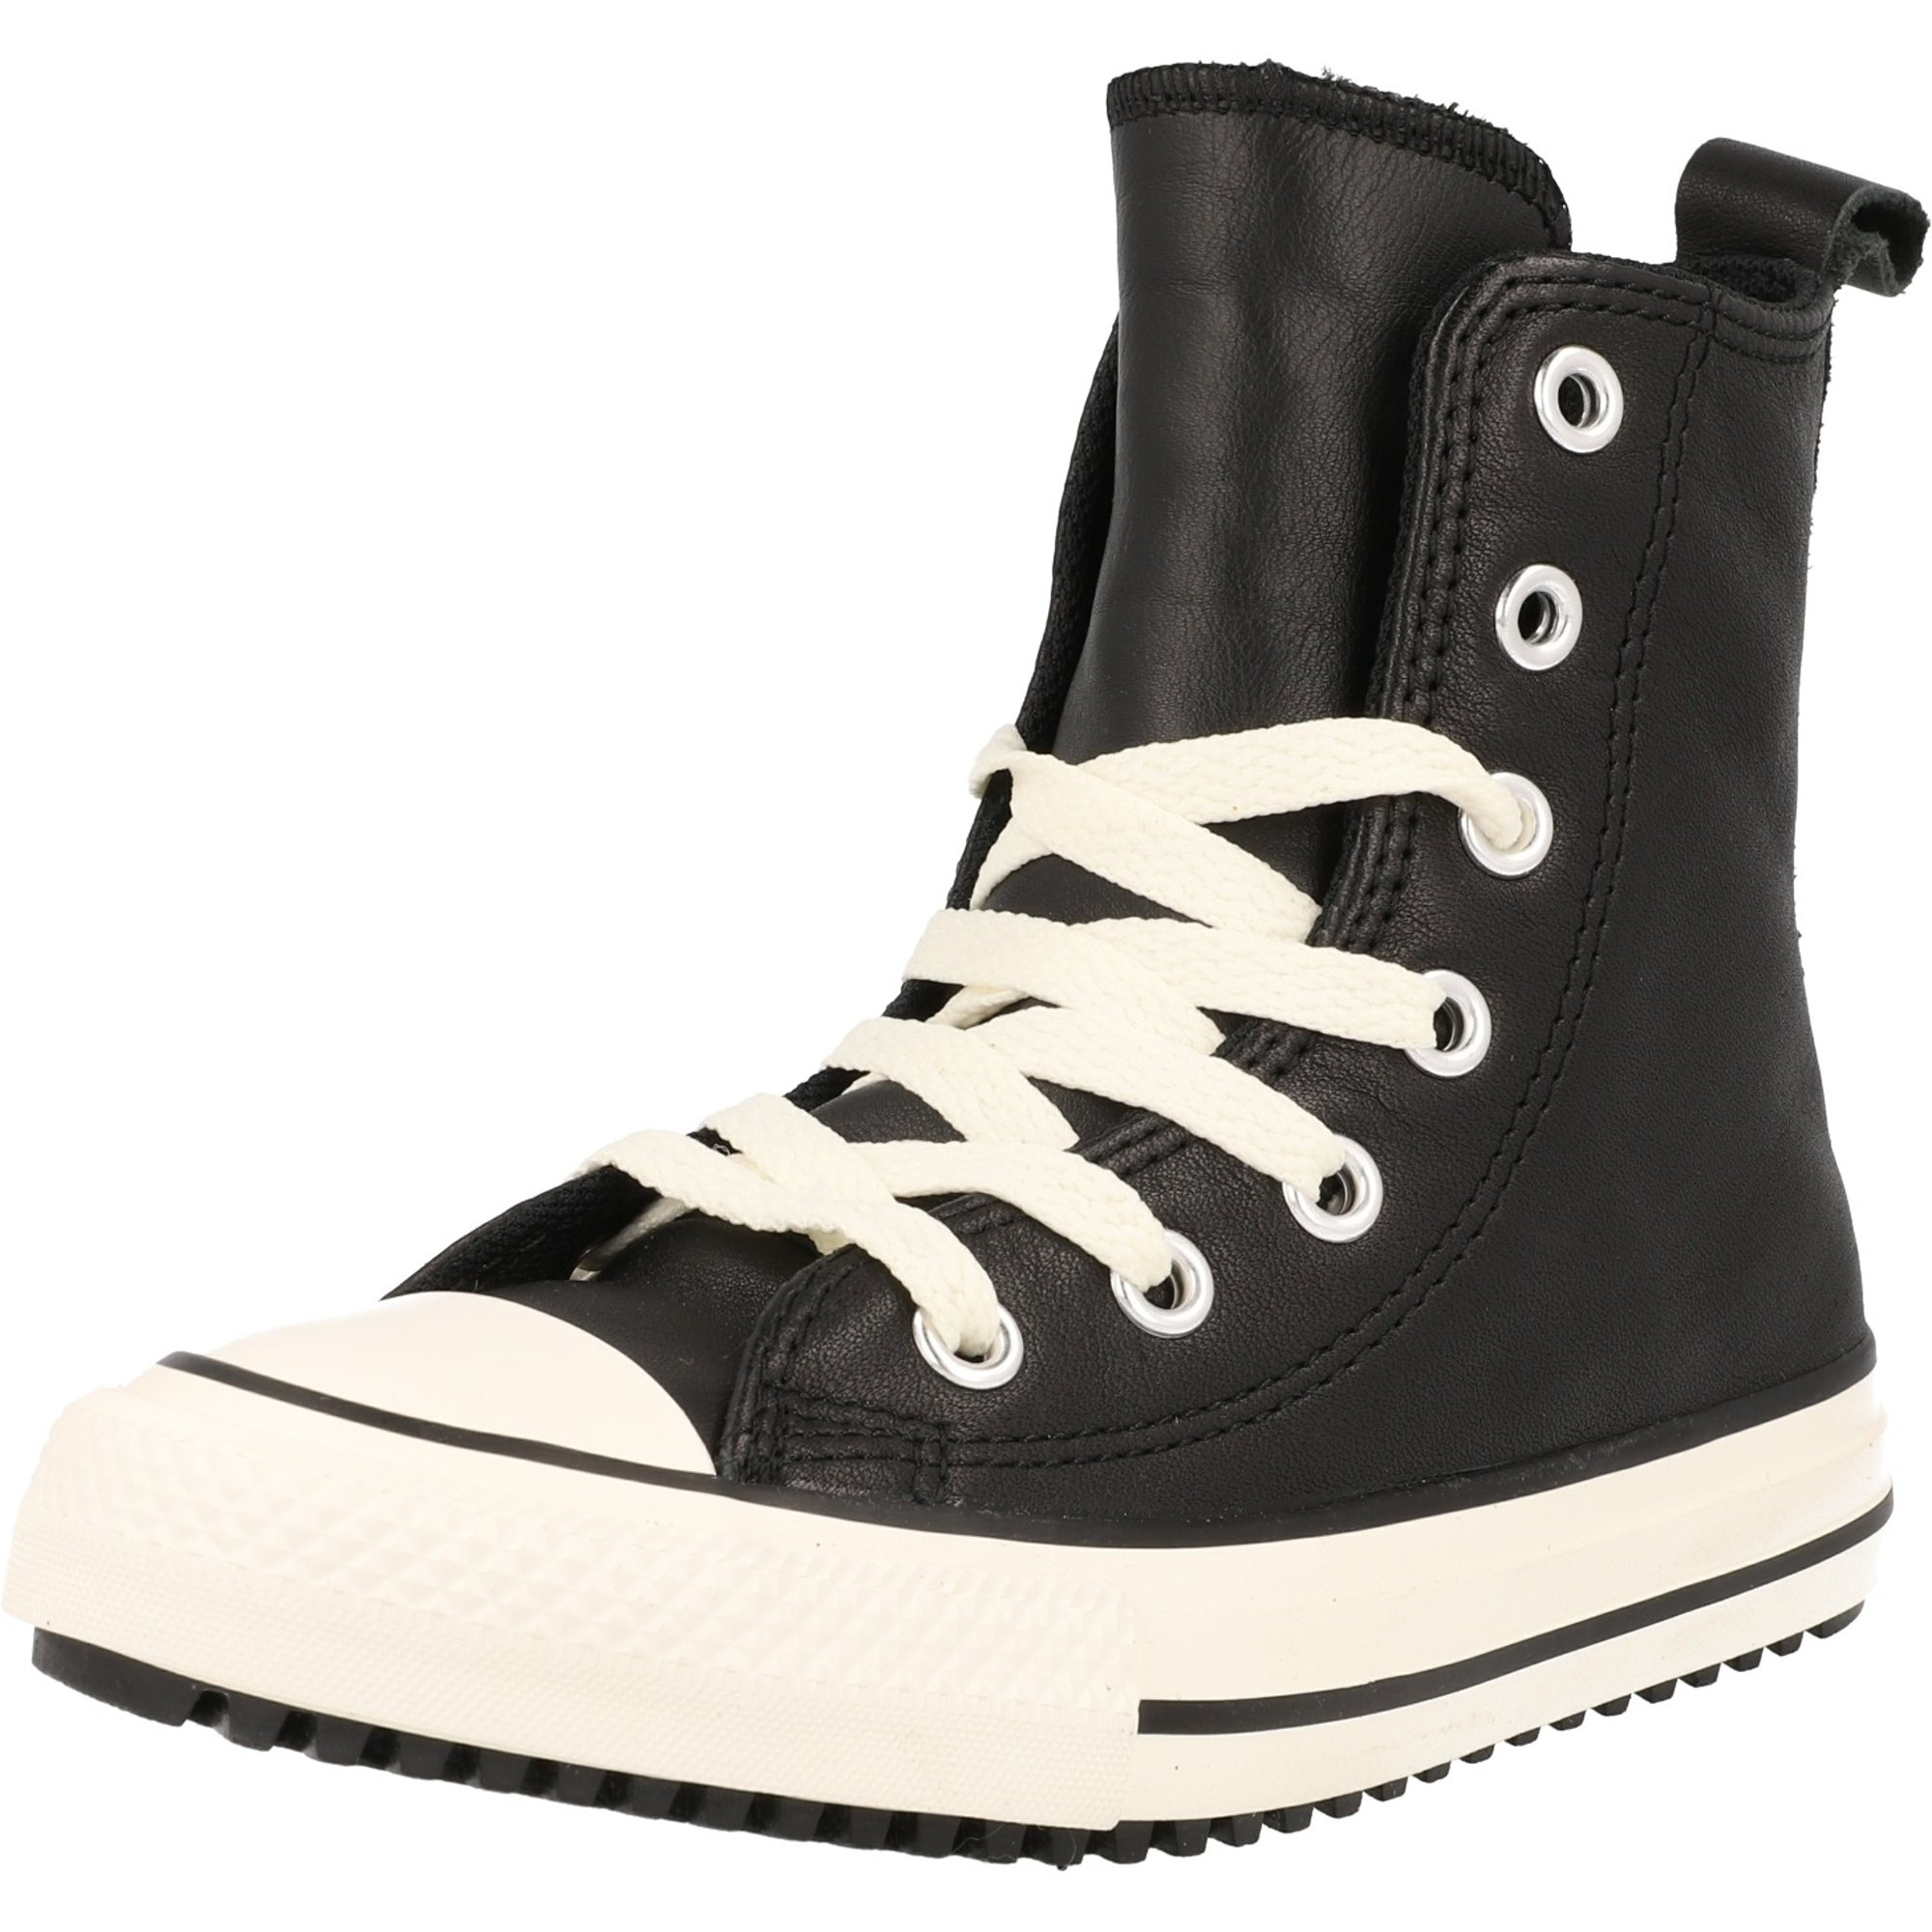 2converse chuck taylor all star pelle